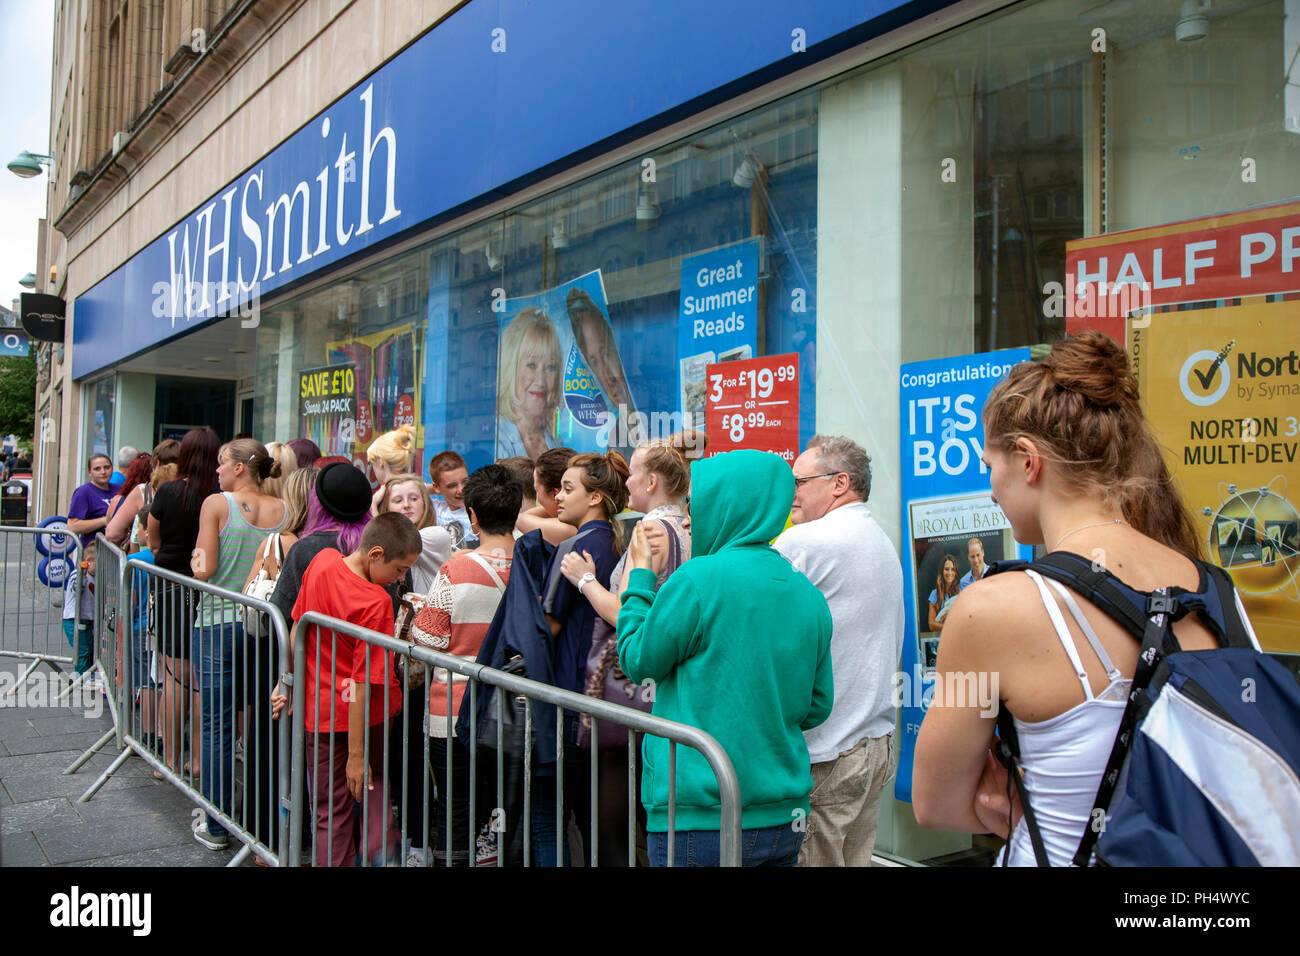 People queueing to meet magician Dynamo appearing at WH Smith in Sheffield, South Yorkshire, England - Stock Image